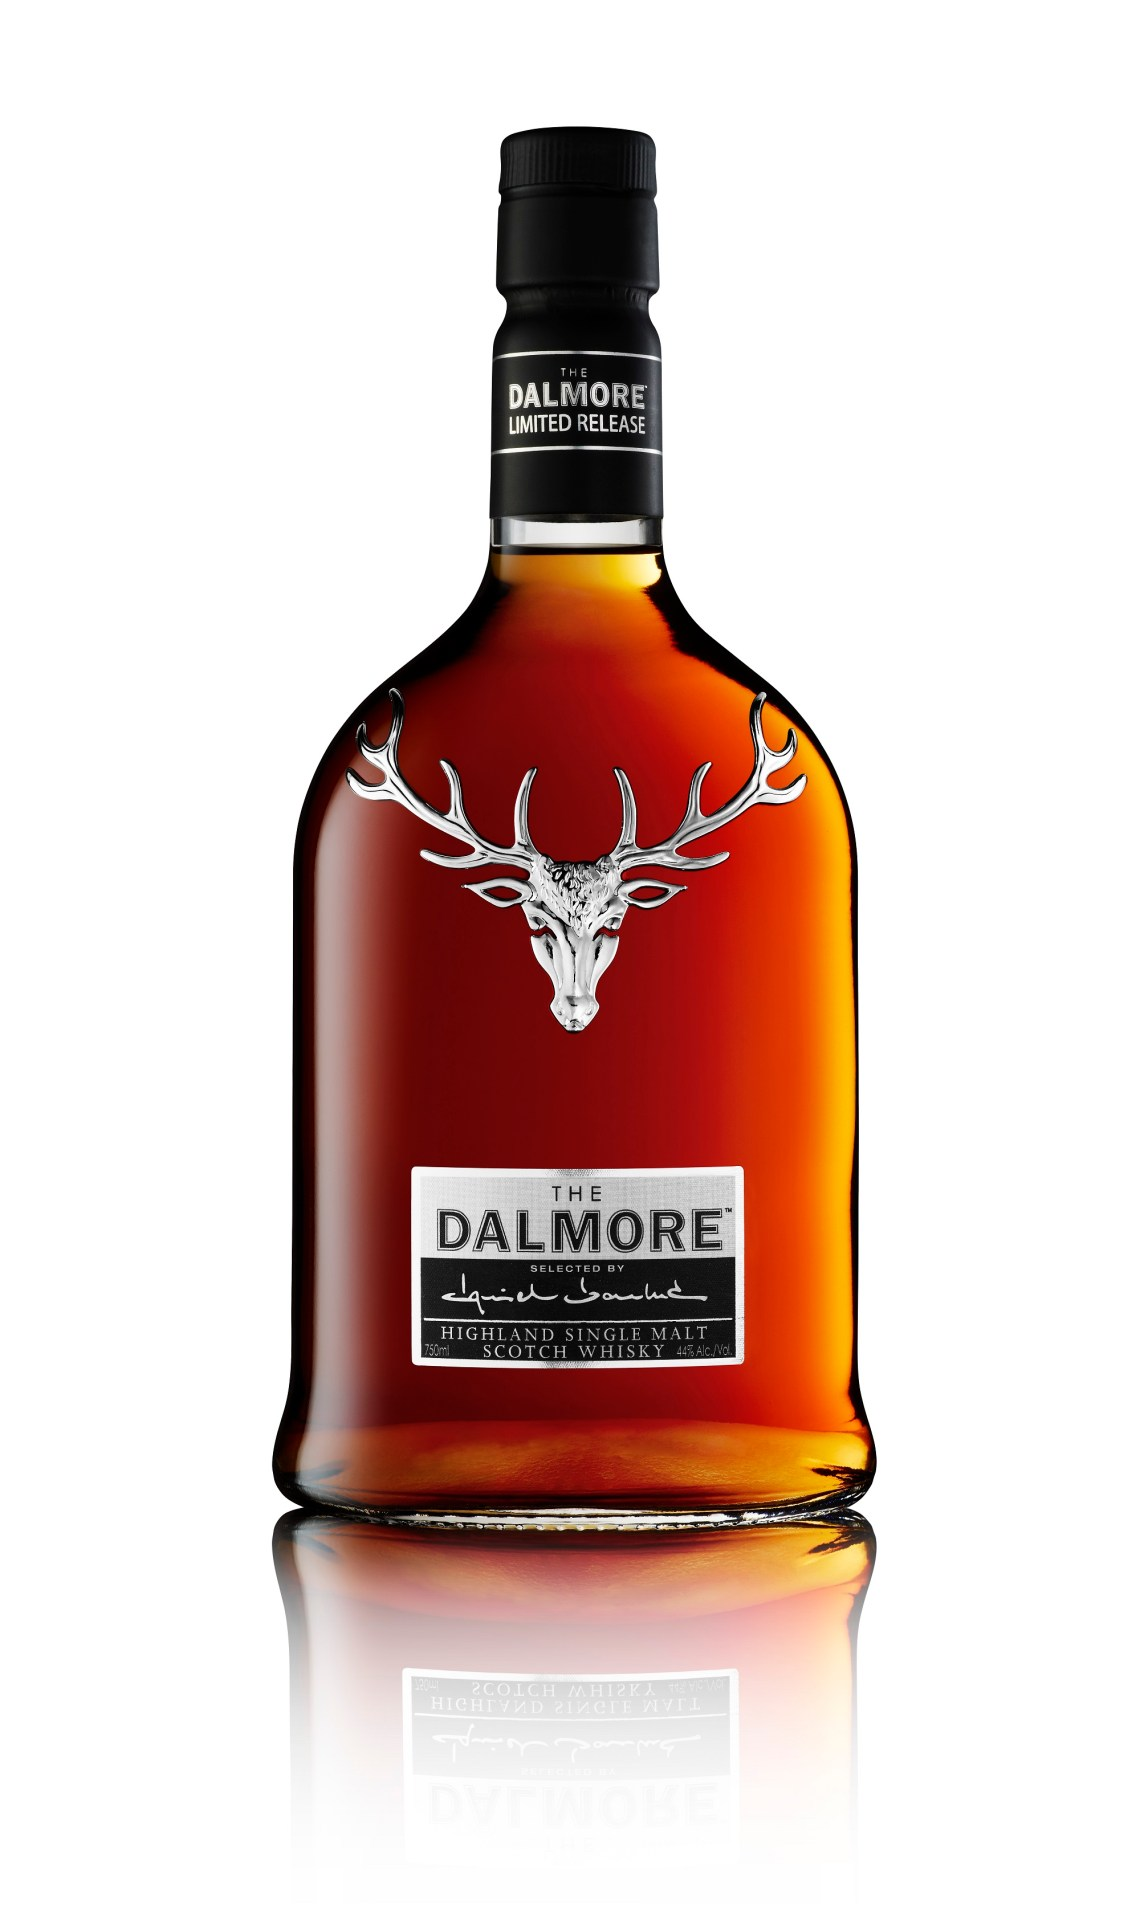 The Dalmore Selected By Daniel Boulud